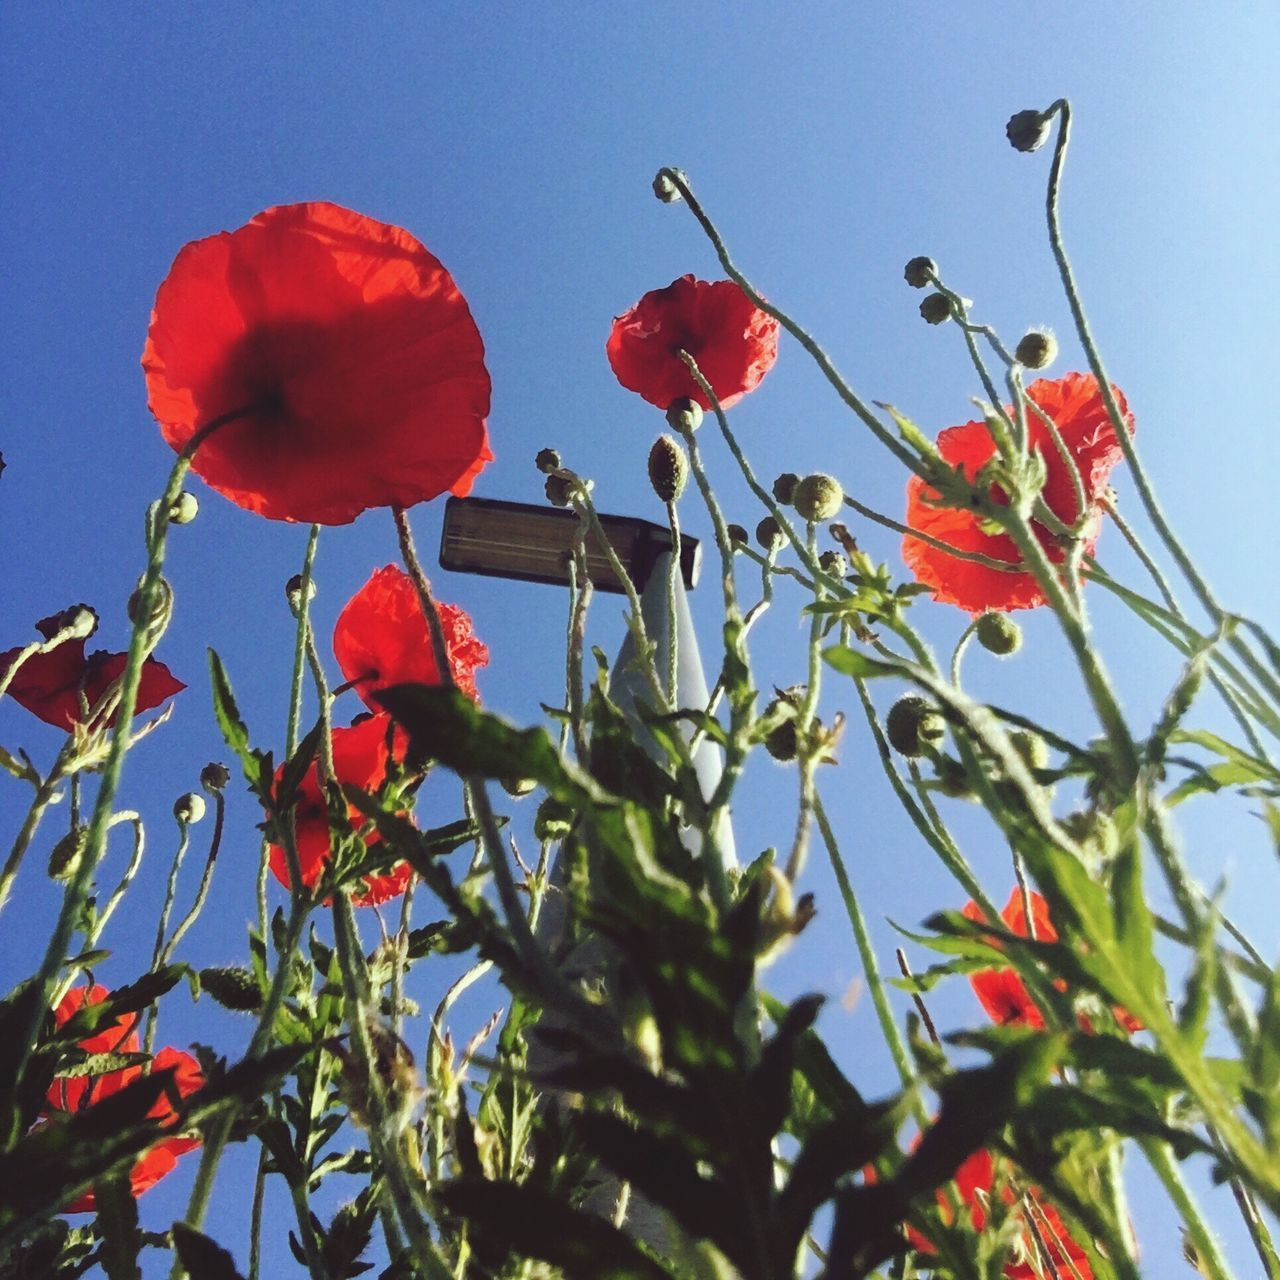 flower, growth, beauty in nature, nature, red, low angle view, petal, plant, fragility, freshness, no people, day, outdoors, blooming, poppy, sky, close-up, flower head